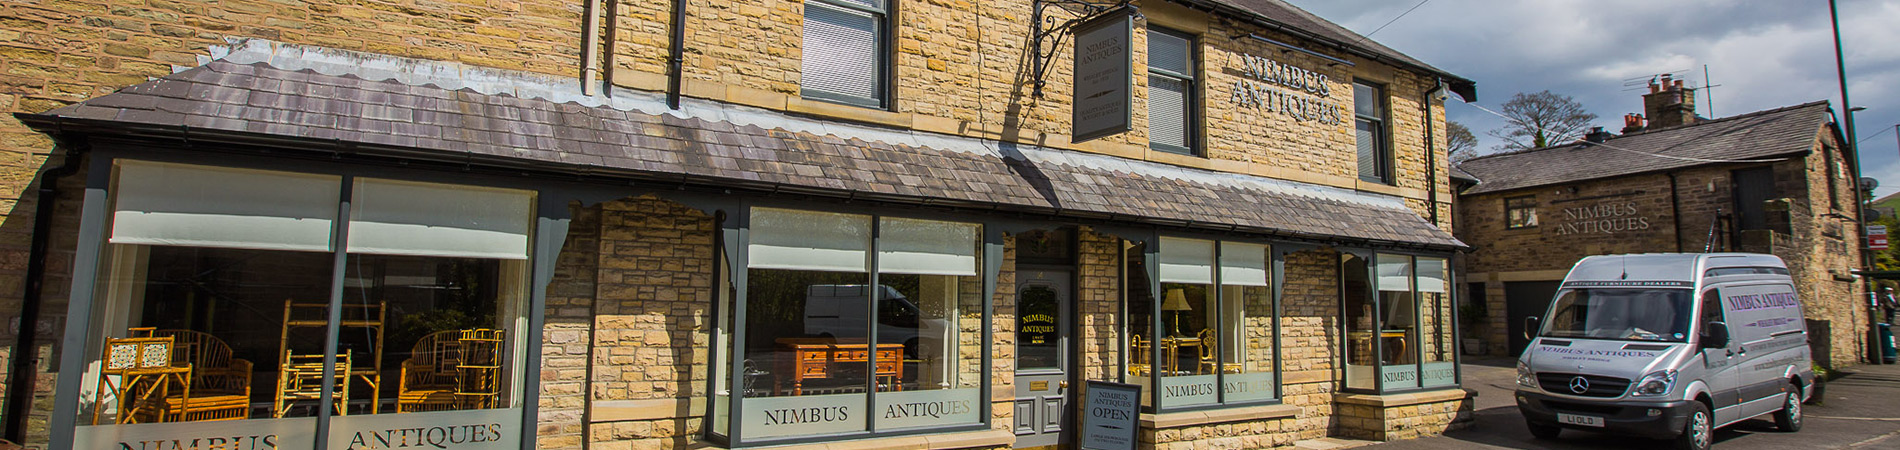 Nimbus Antiques Shop Front